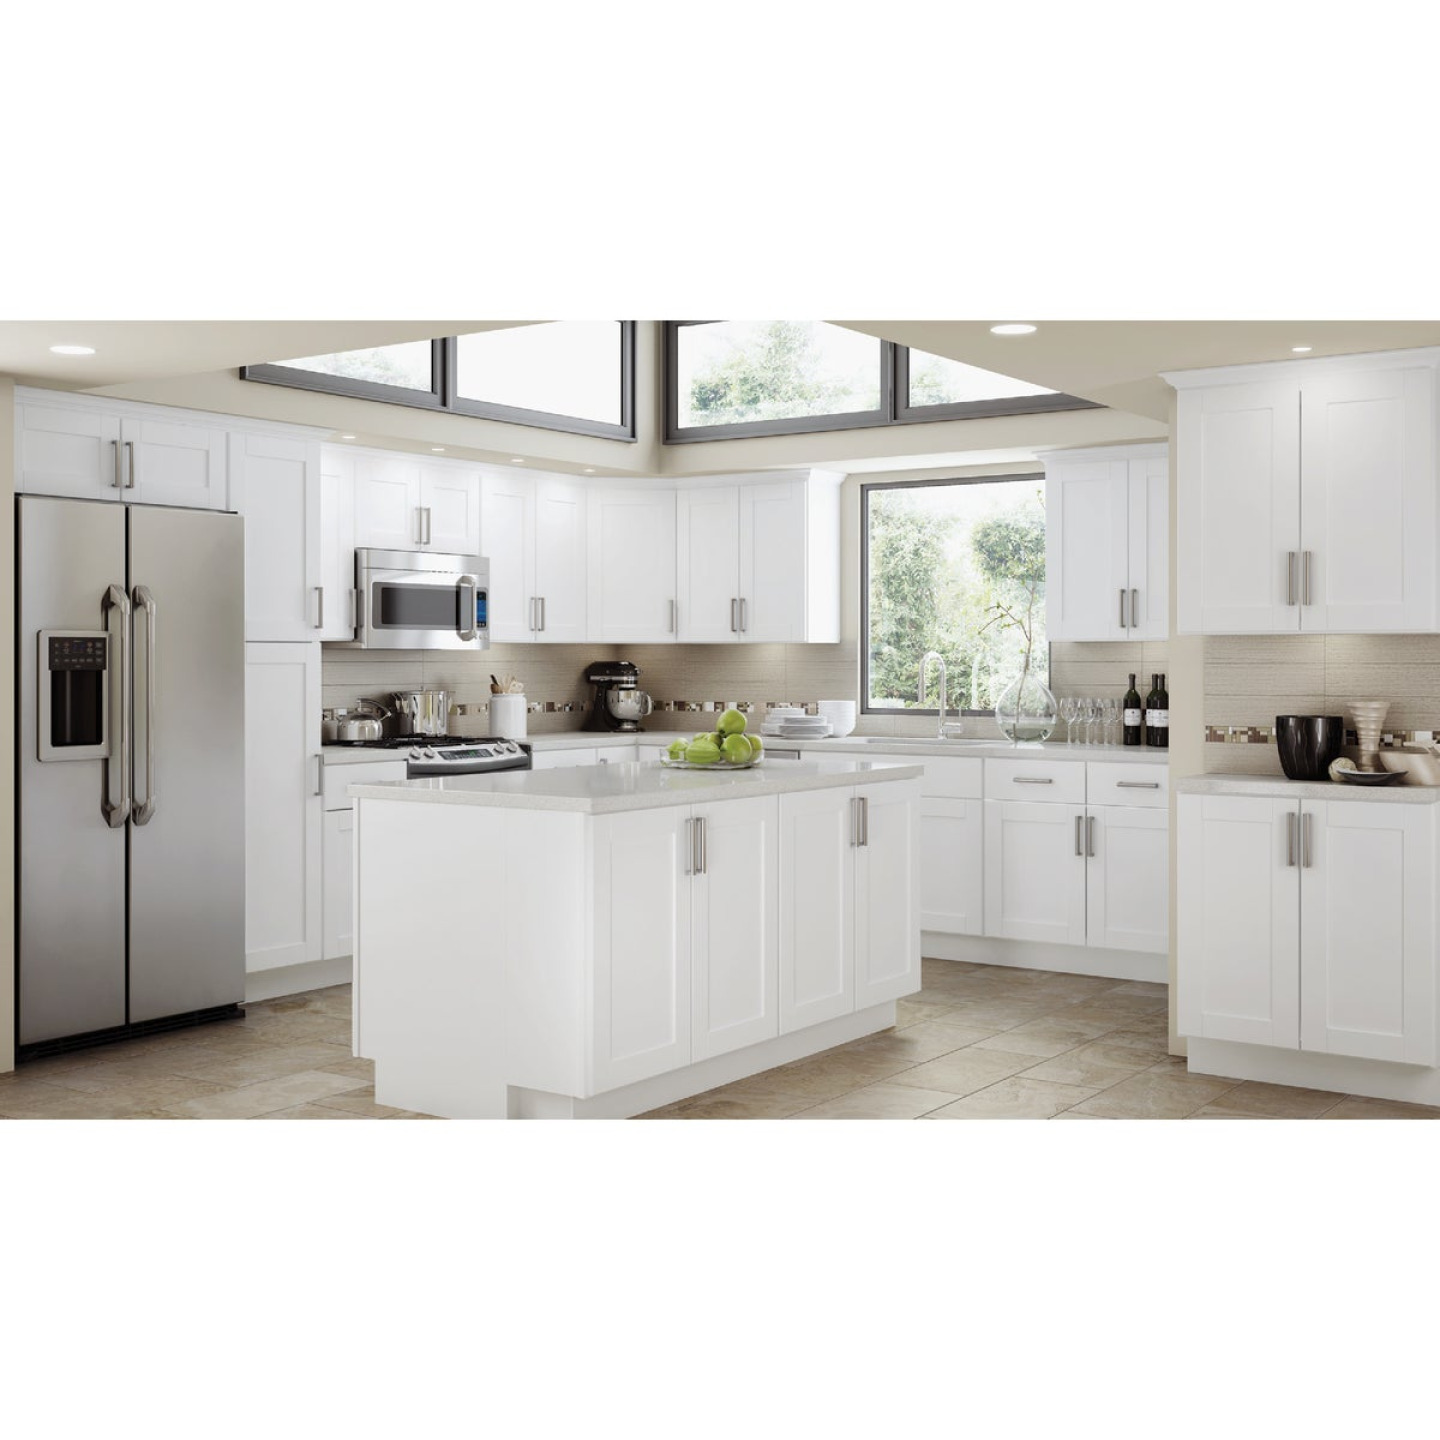 Continental Cabinets Andover Shaker 12 In. W x 34 In. H x 24 In. D White Thermofoil Base Kitchen Cabinet Image 2